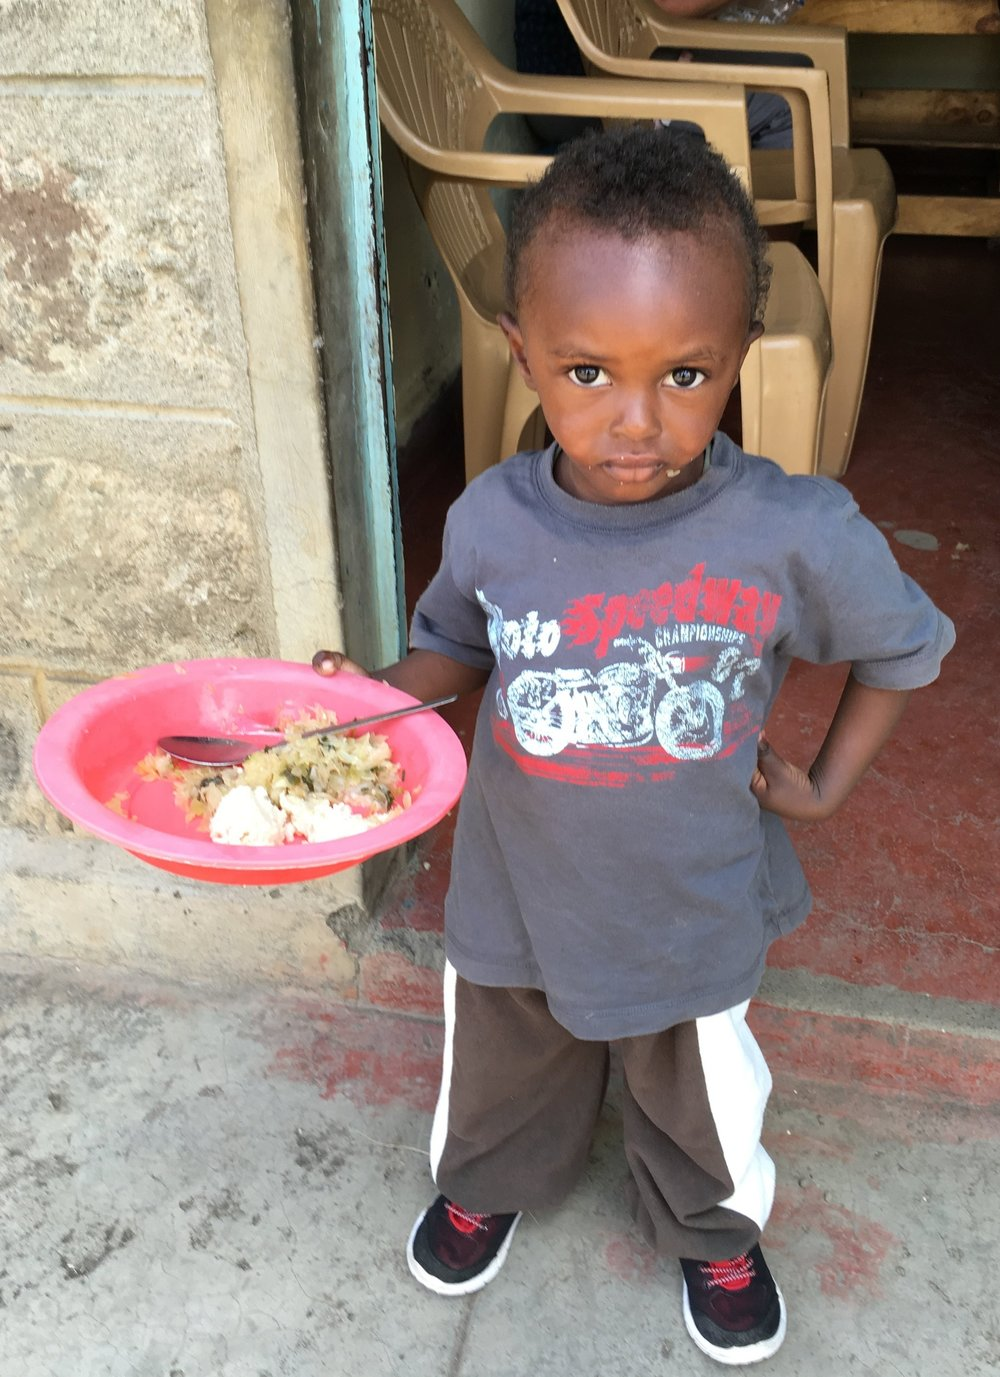 This is Richard. Your support will help ensure he gets lunch each day. The lunch Little Lambs provides is often the only meal these kids will have that day.